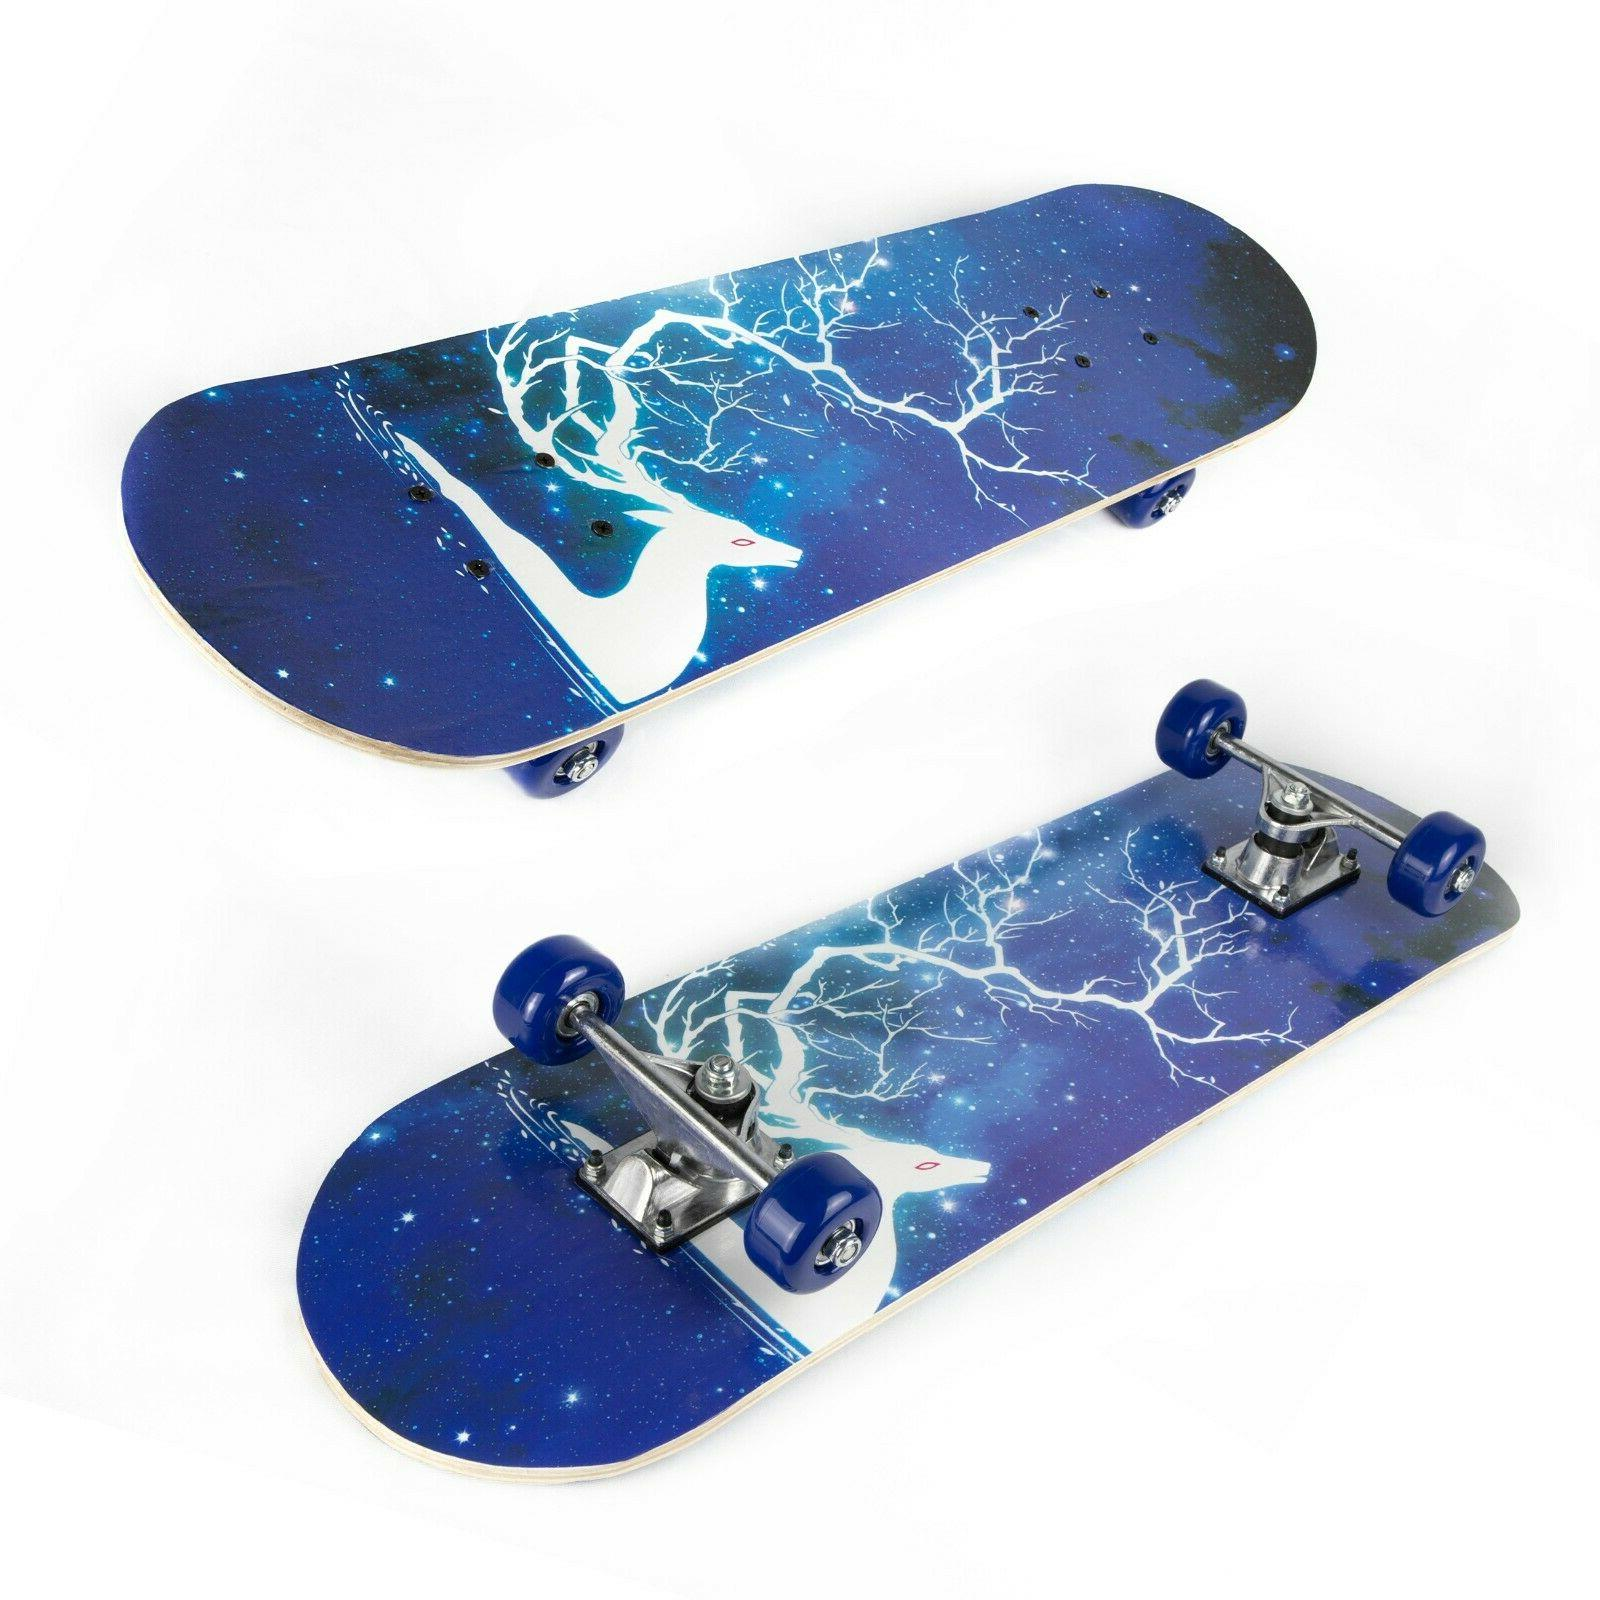 Complete for Boys Girls Adults 7 Lays Maple Deck